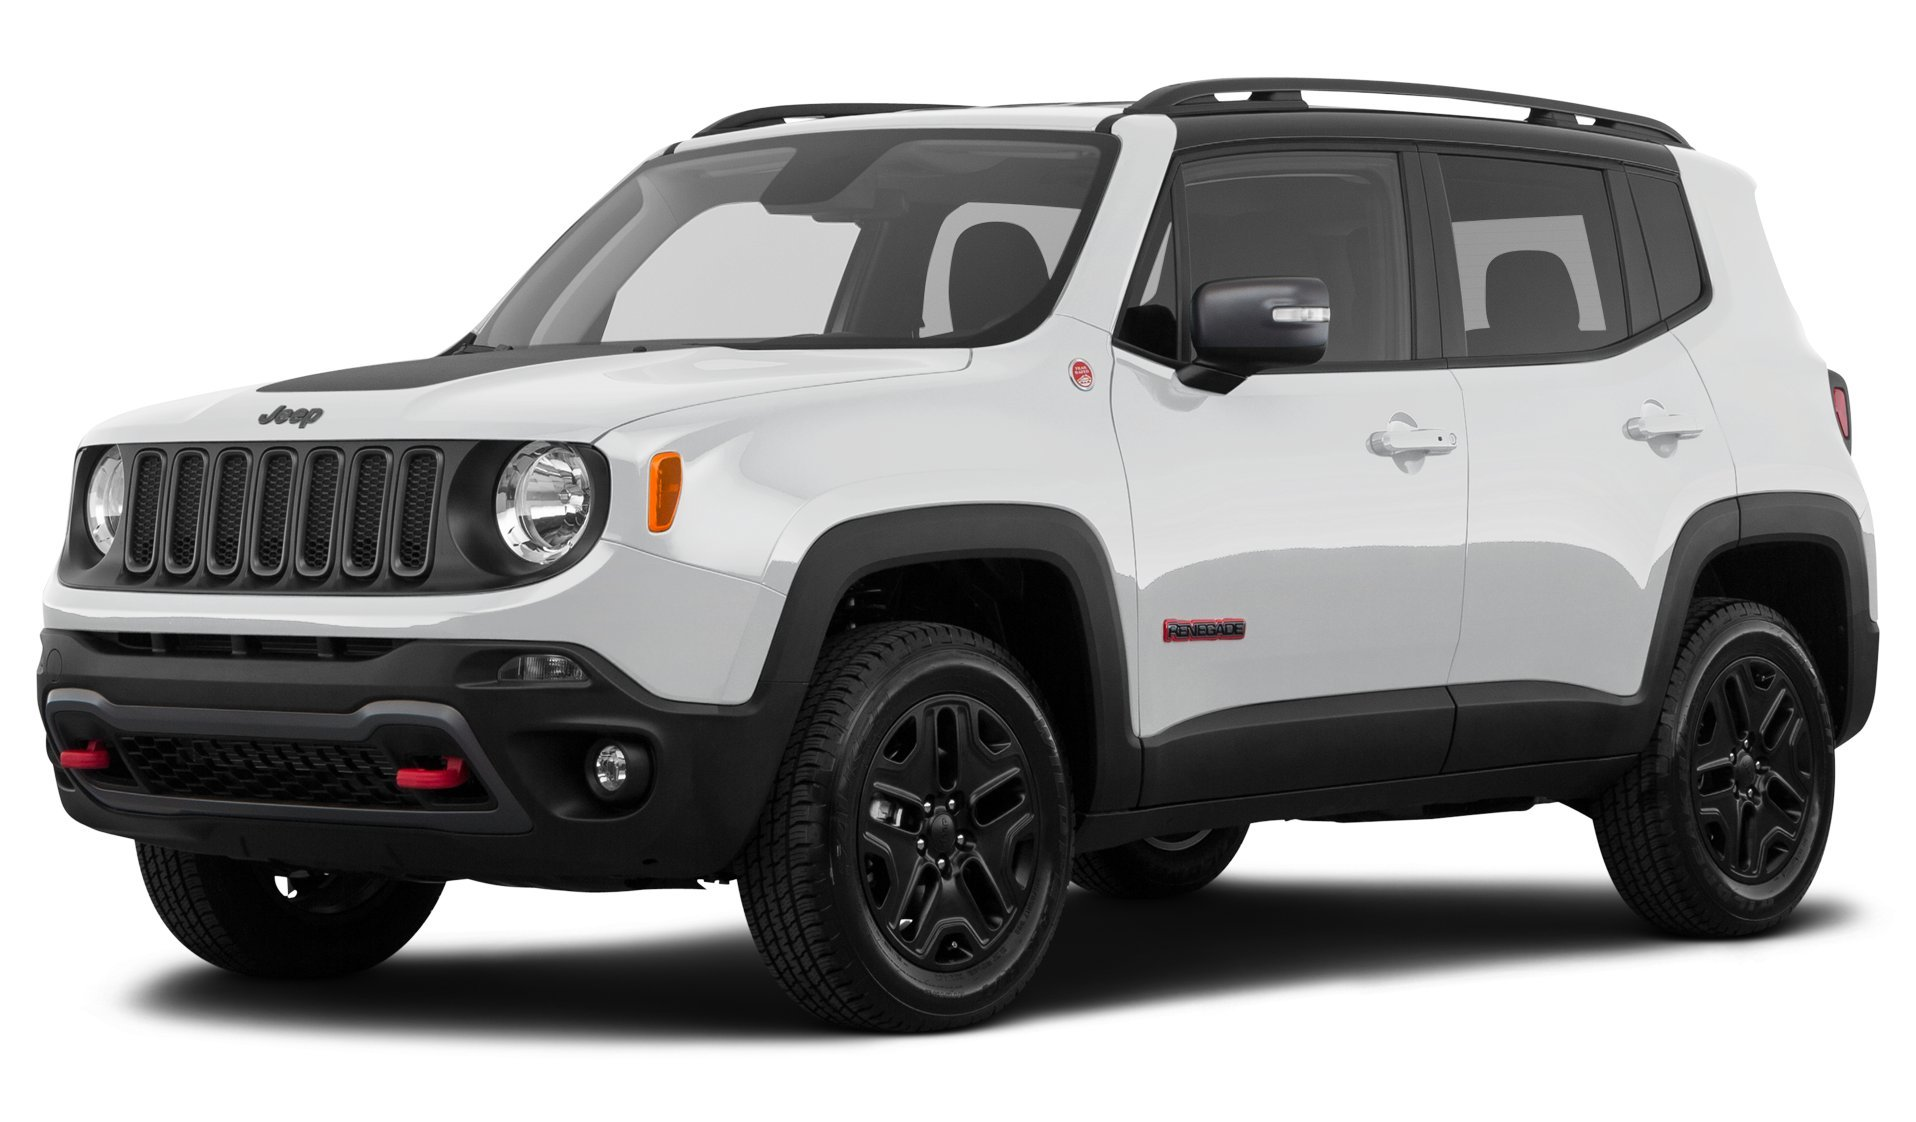 2018 jeep renegade reviews images and specs vehicles. Black Bedroom Furniture Sets. Home Design Ideas